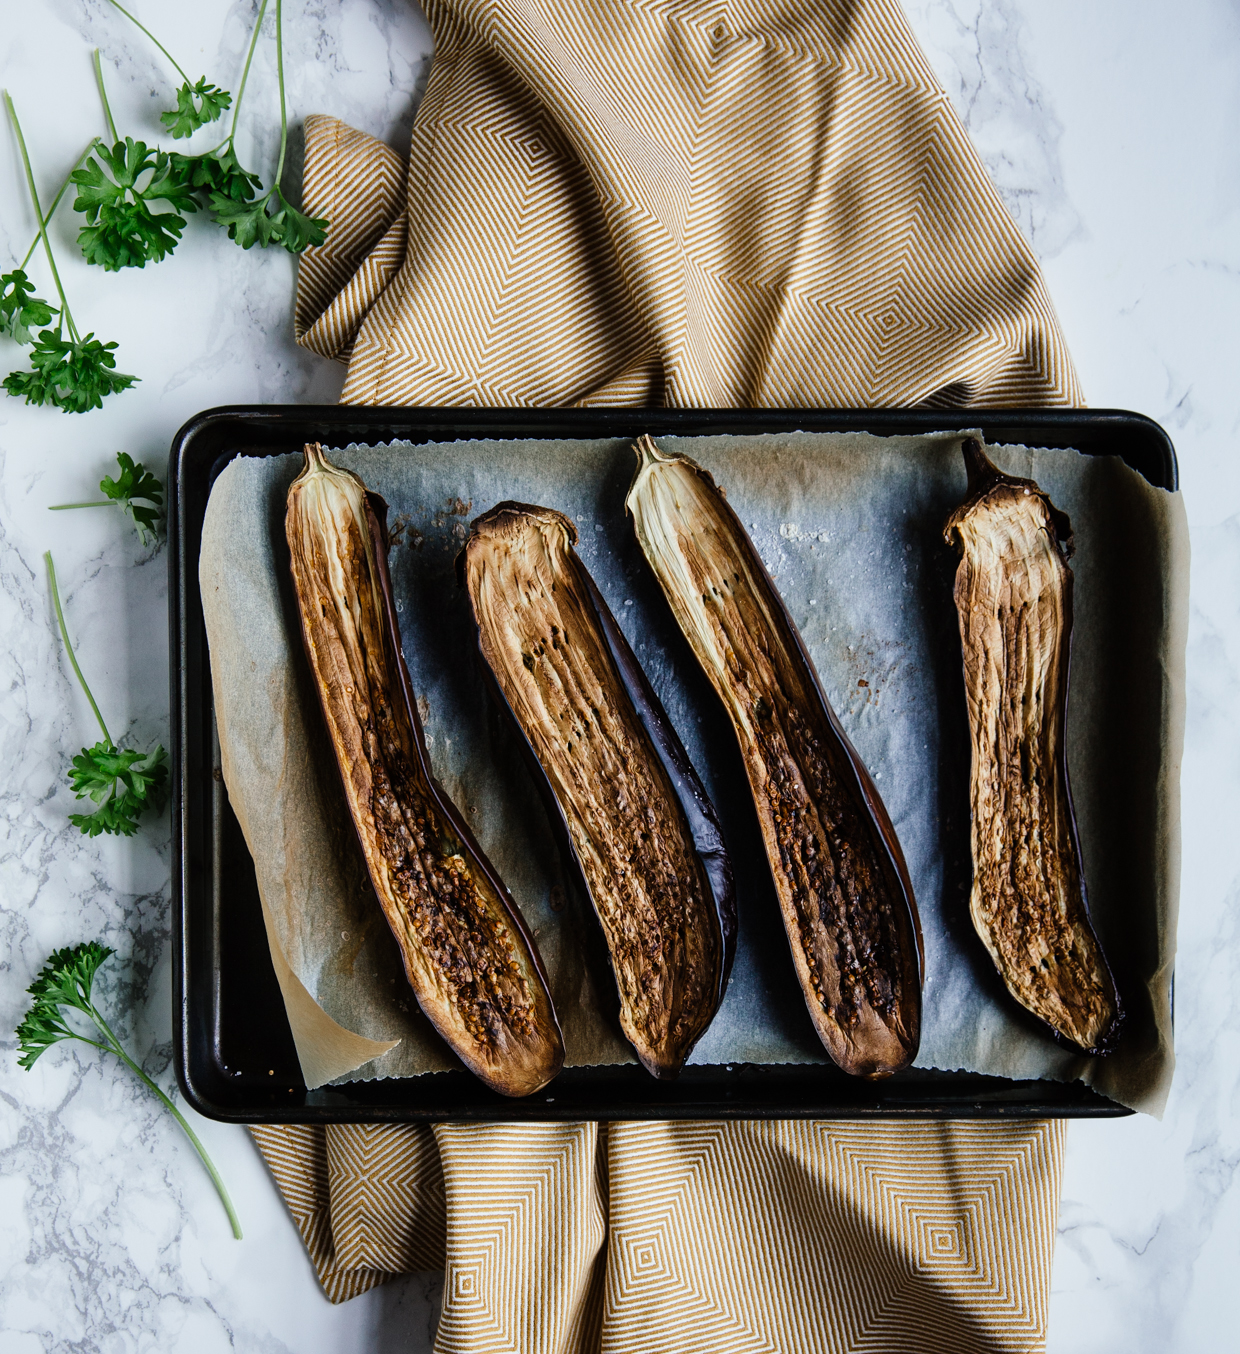 Roasted aubergine & smoked mackerel crostini